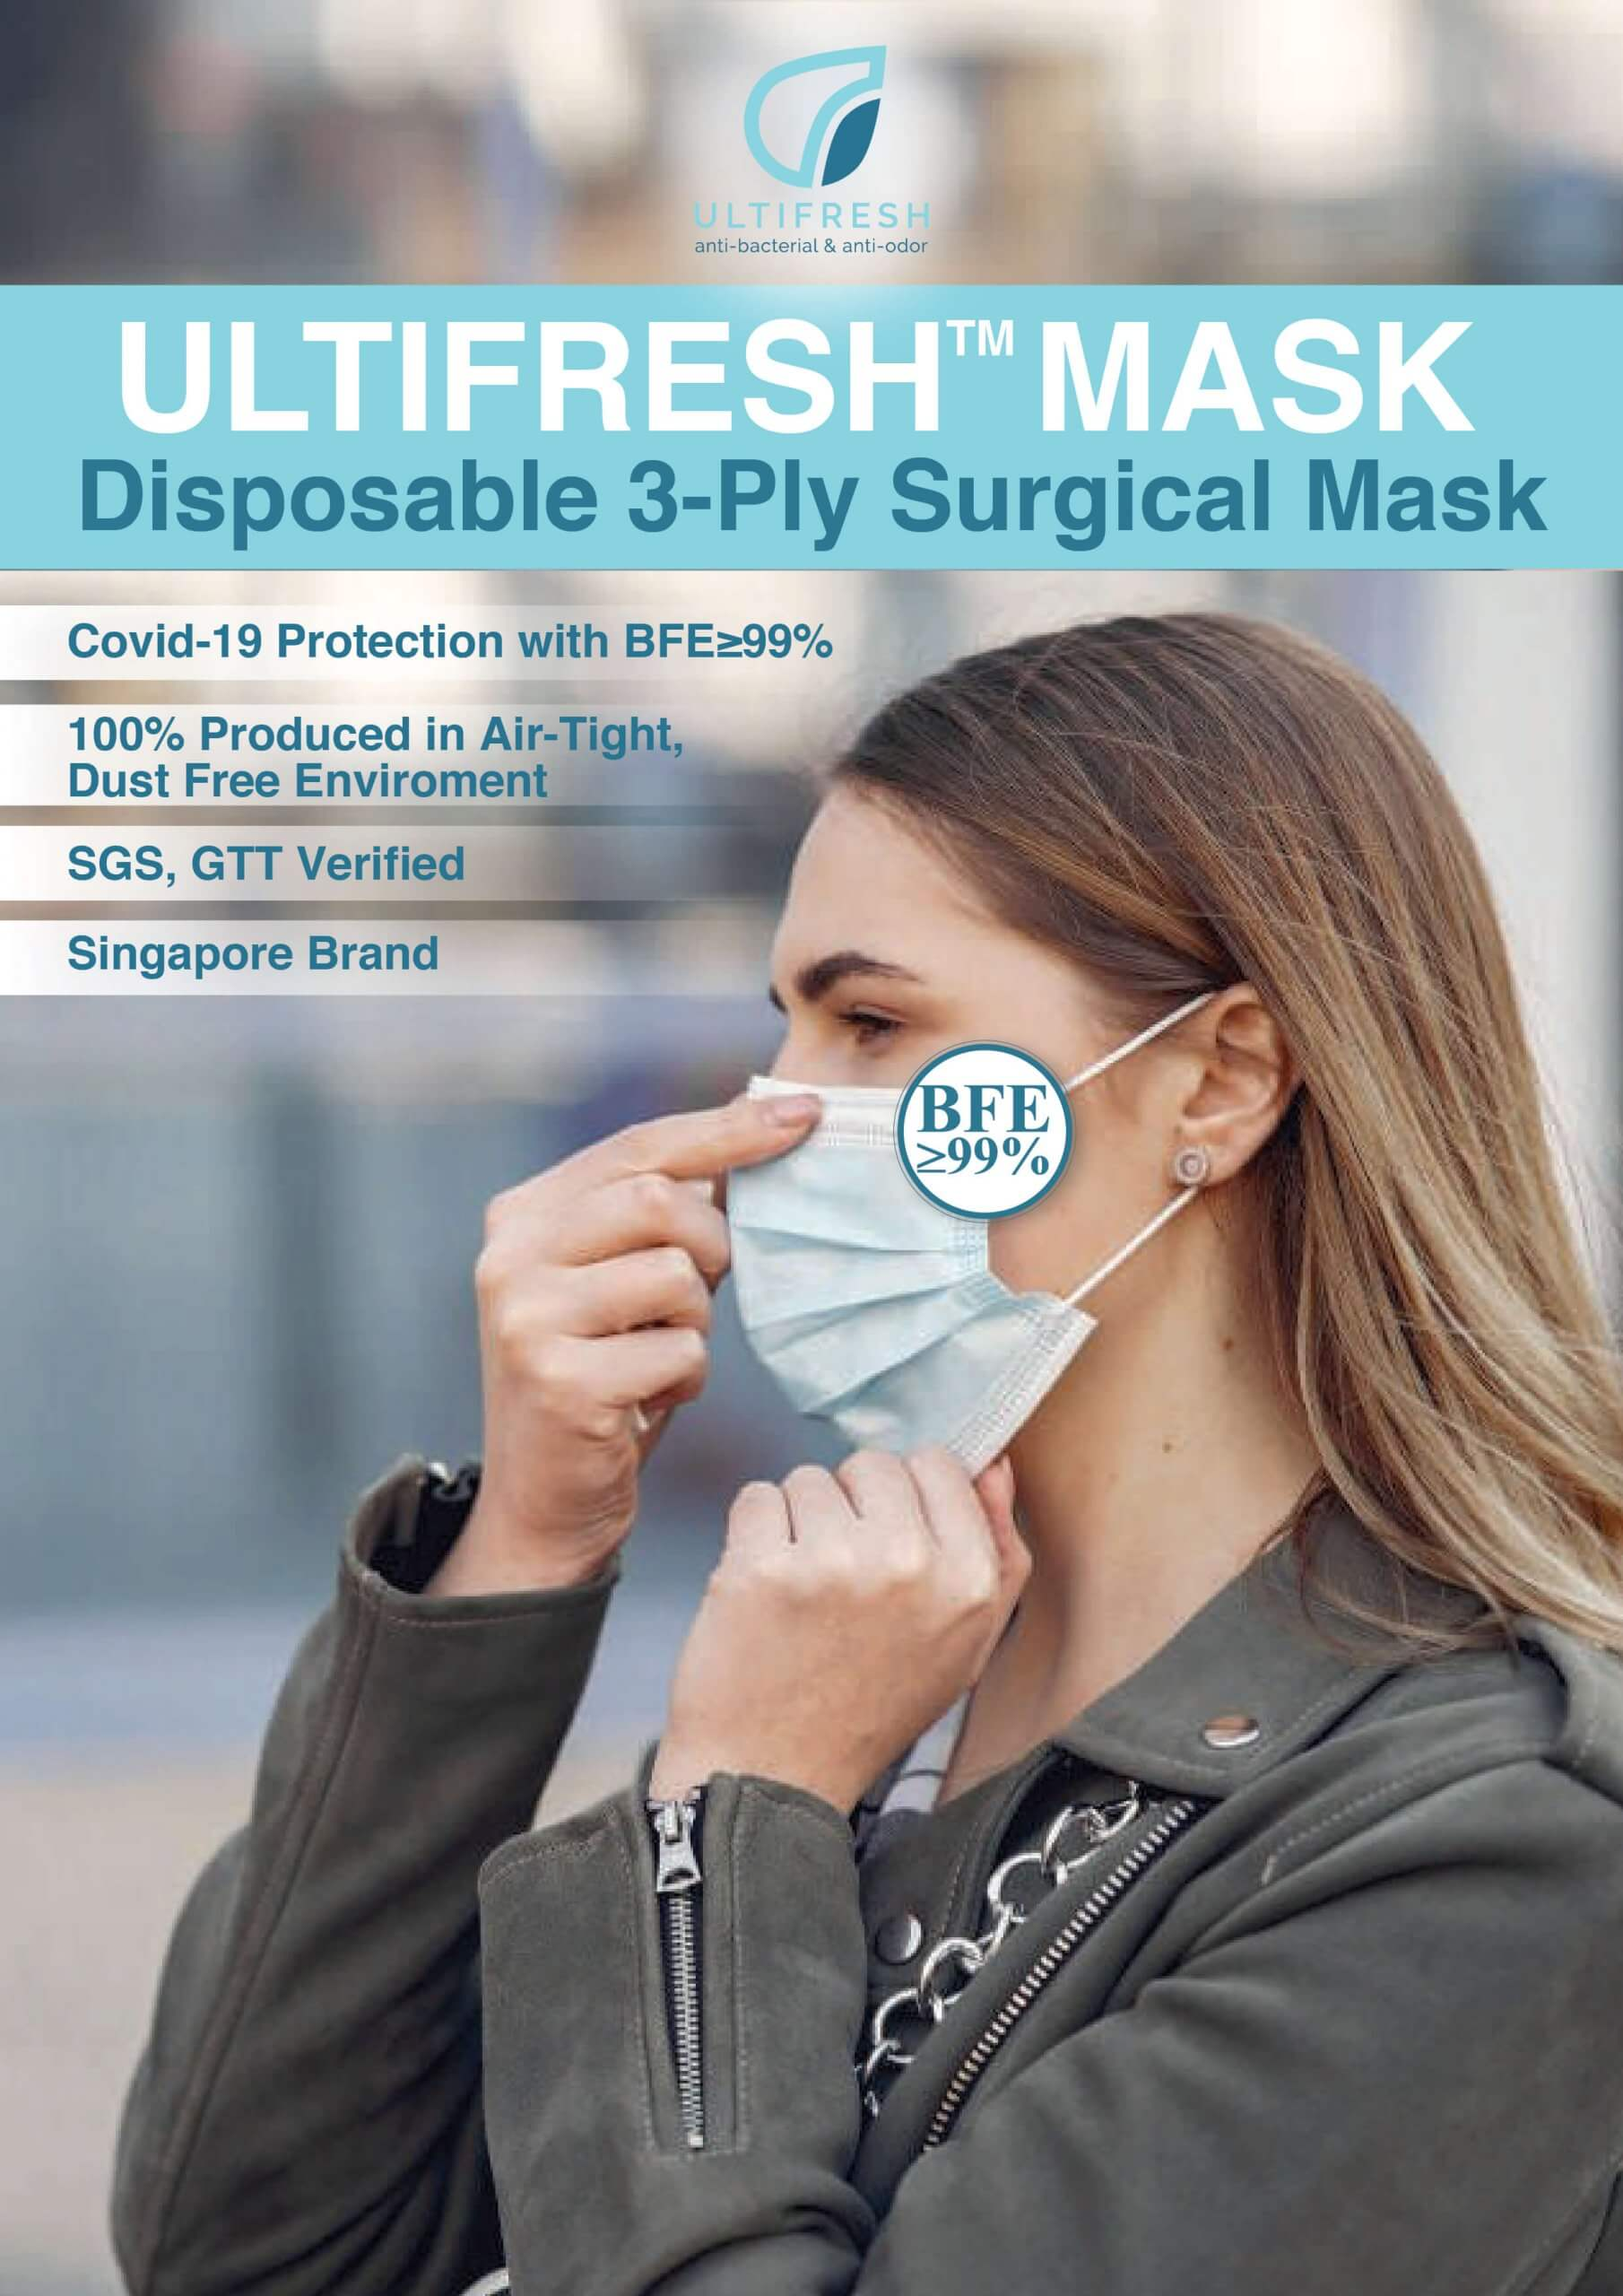 Ultifresh 3ply surgical mask with BFE>99% protection